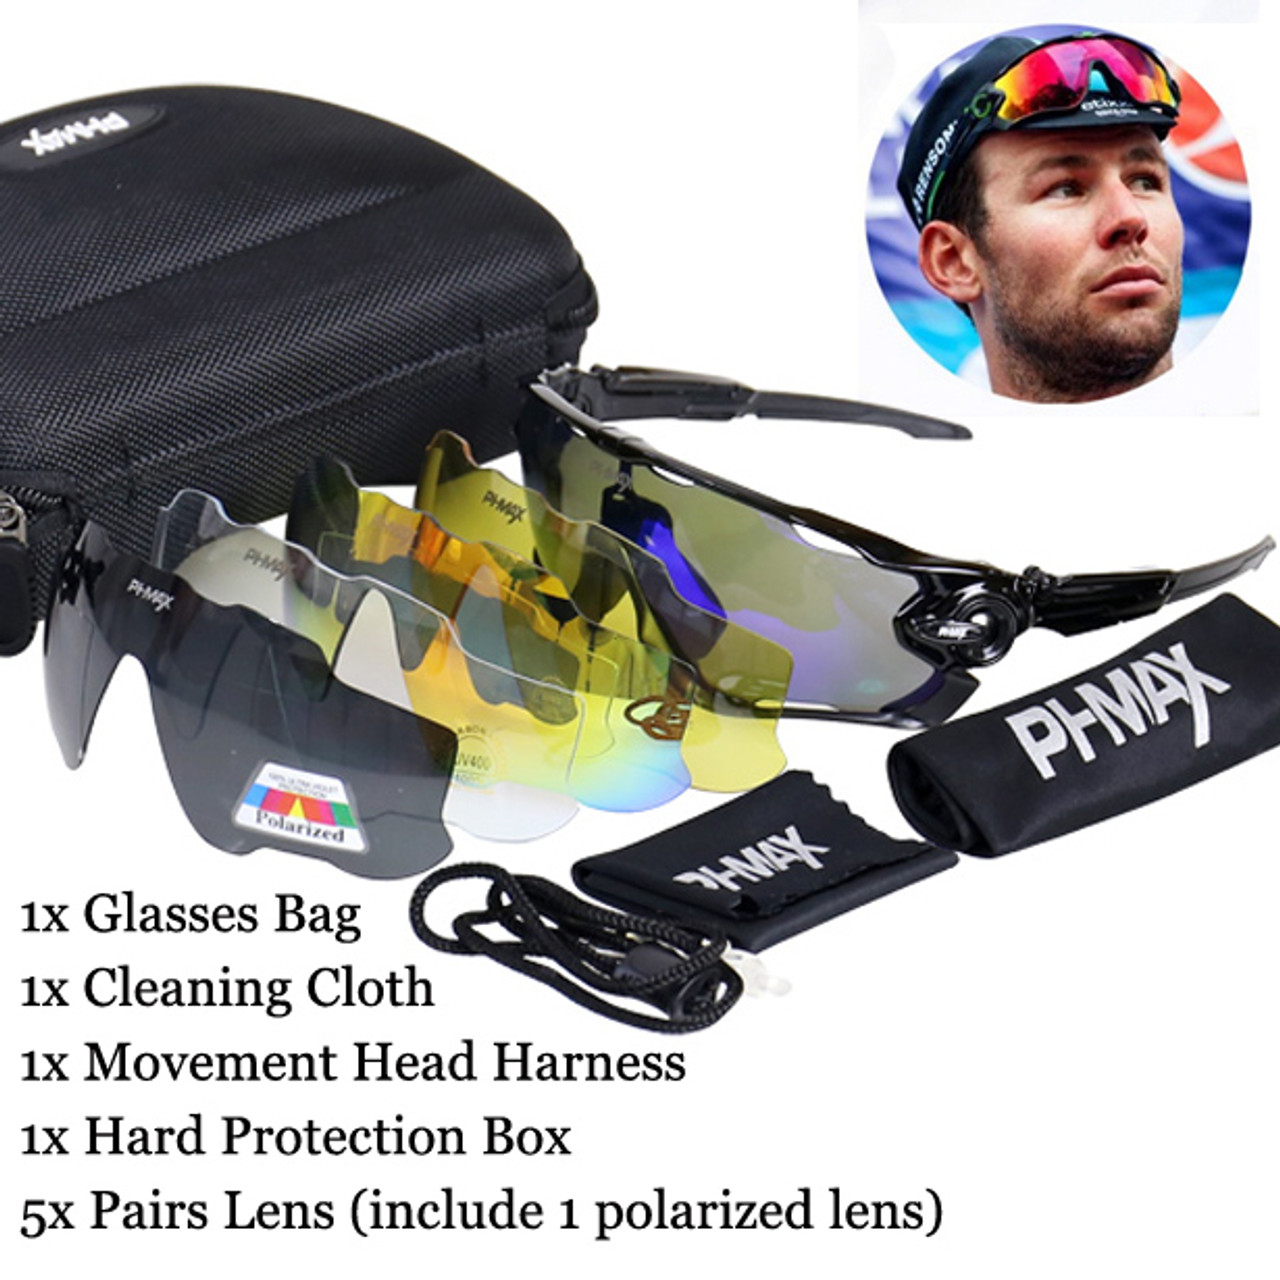 05a2db9a85 ... PHMAX Polarized 5 Lens Cycling Eyewear MTB Bicycle Sun Glasses Cycling  Sunglasses Mountain Bike Goggles Gafas ...